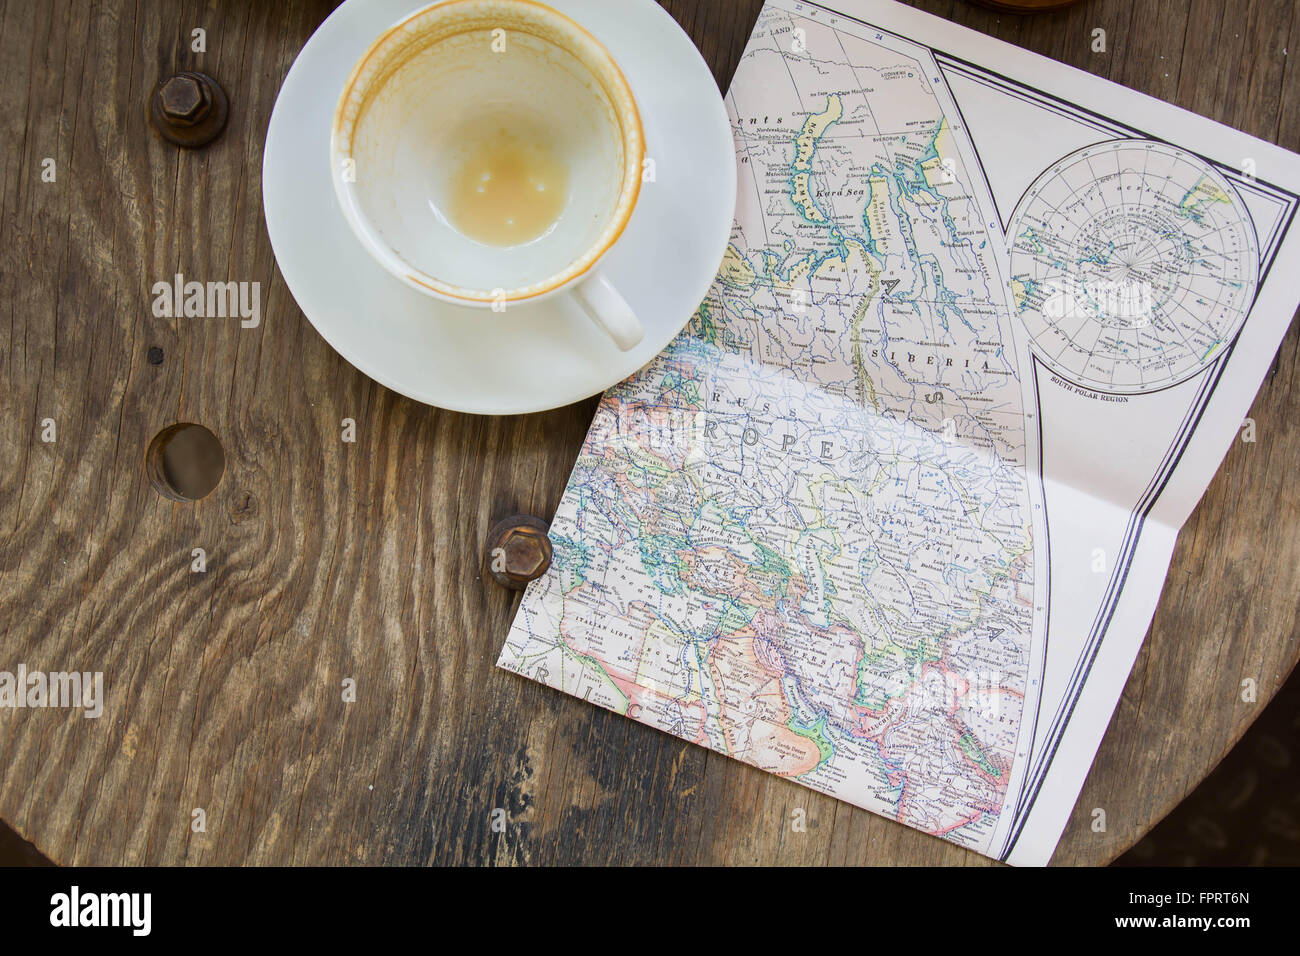 Empty coffee cup and the old map, Europe and travel - top view Stock on empty map usa, empty continent map, turkey map europe, empty india map, printable outline maps europe, large printable blank map europe, historical outline maps of europe, countries of europe, empty european map, physical features of europe, graphic maps europe, empty america, empty map united states, blank map mediterranean europe, capital cities of europe, mediterranean sea map europe, google maps europe, current map europe, empty asia map, empty africa map,